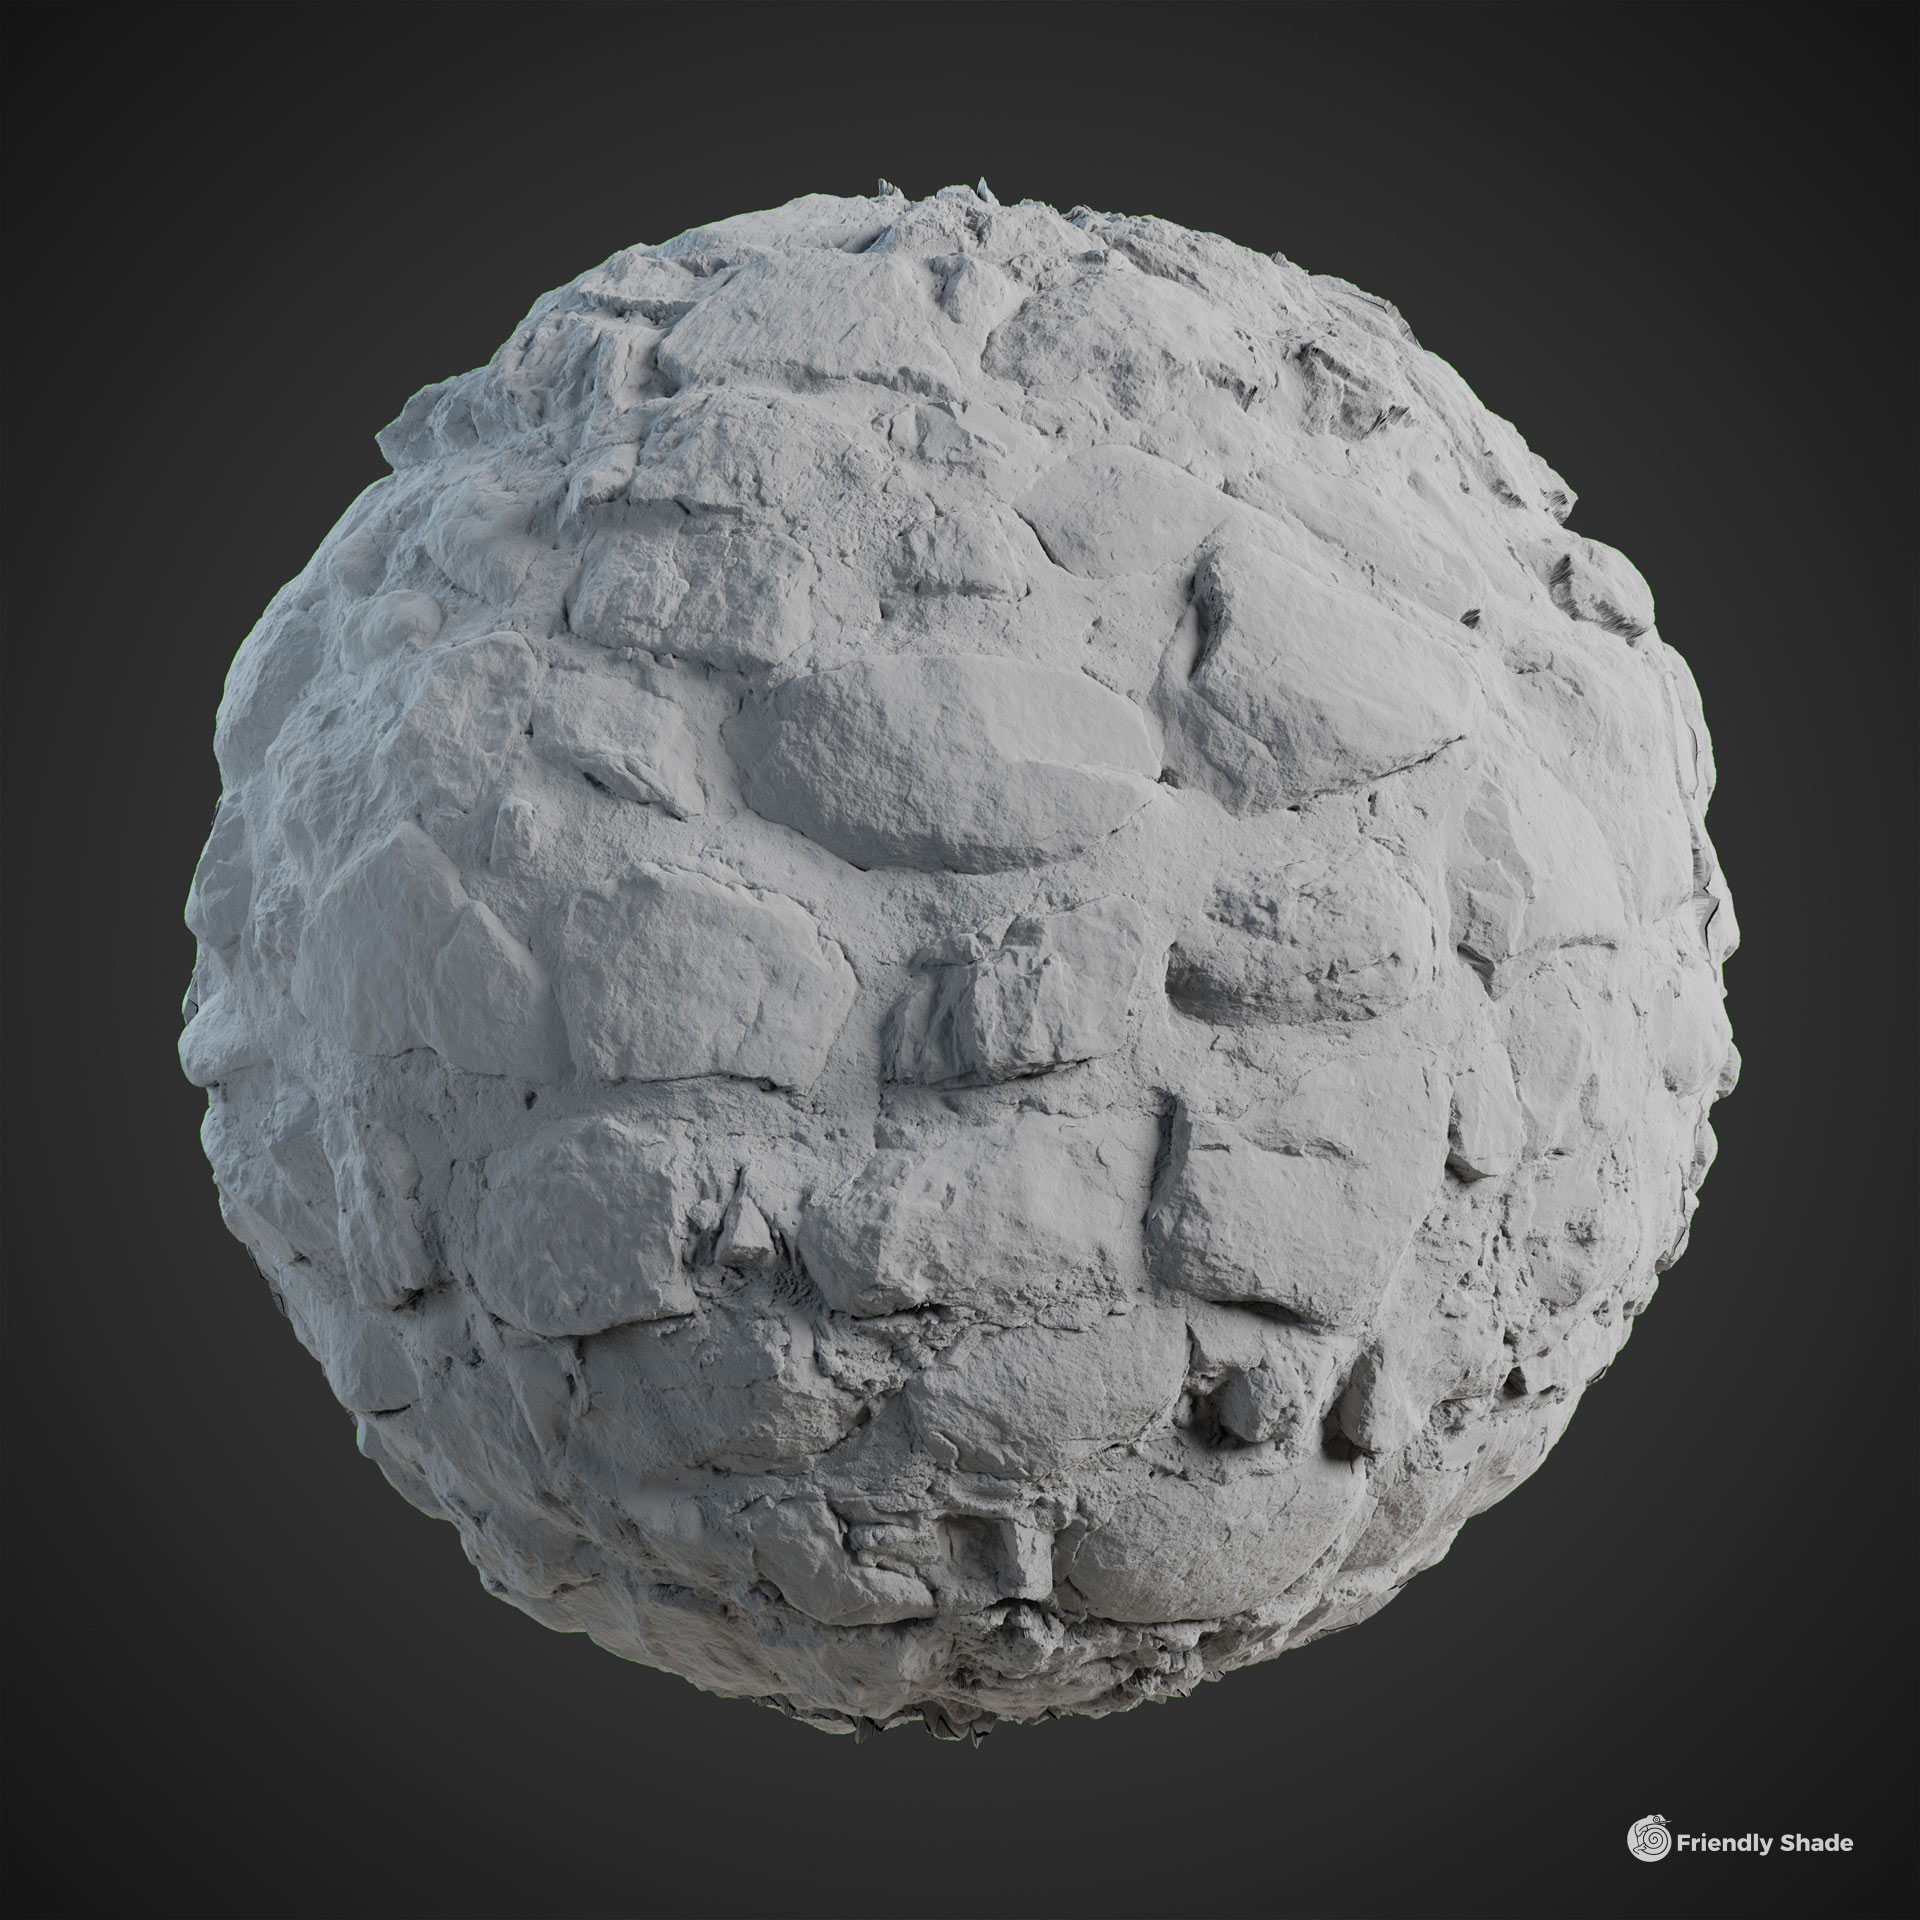 The image shows a clay sphere of the Cobblestone Wall texture